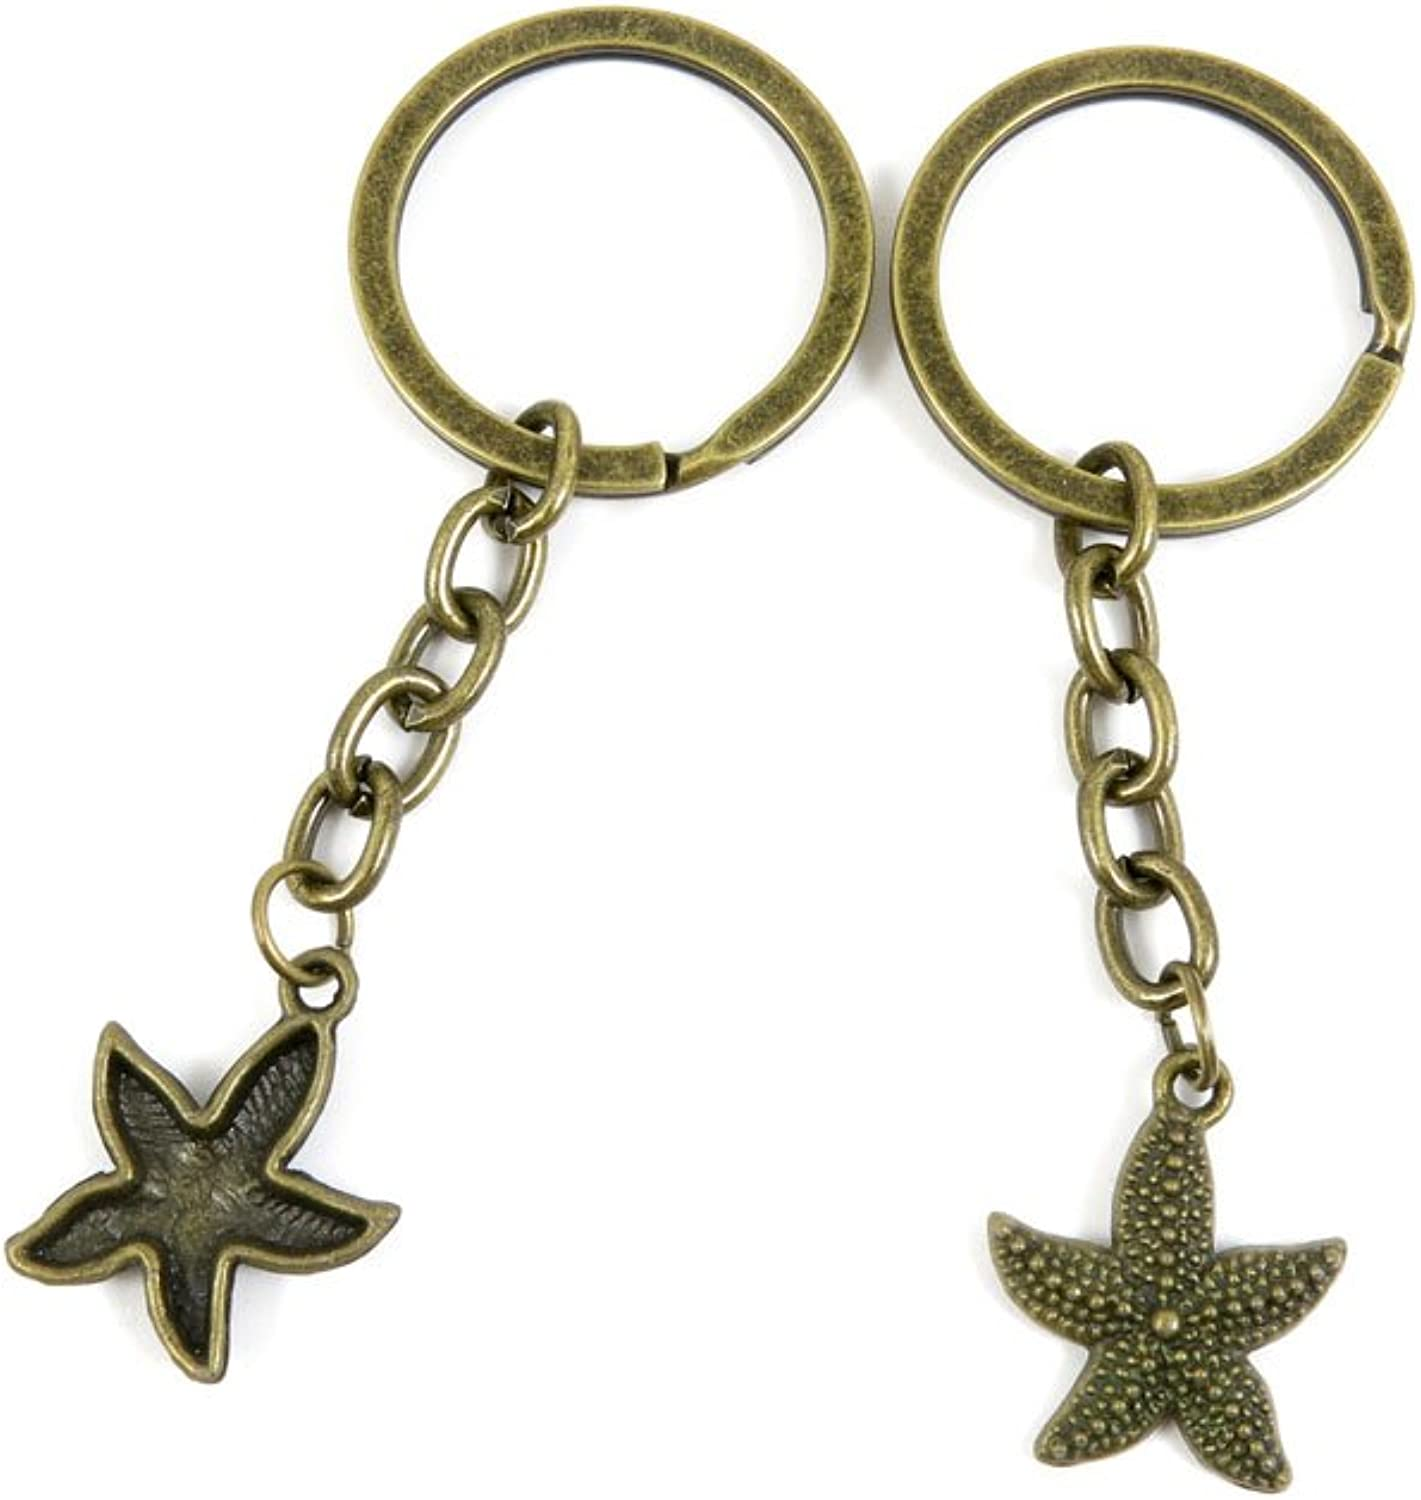 100 PCS Keyrings Keychains Key Ring Chains Tags Jewelry Findings Clasps Buckles Supplies Y4HX5 Starfish Sea Star